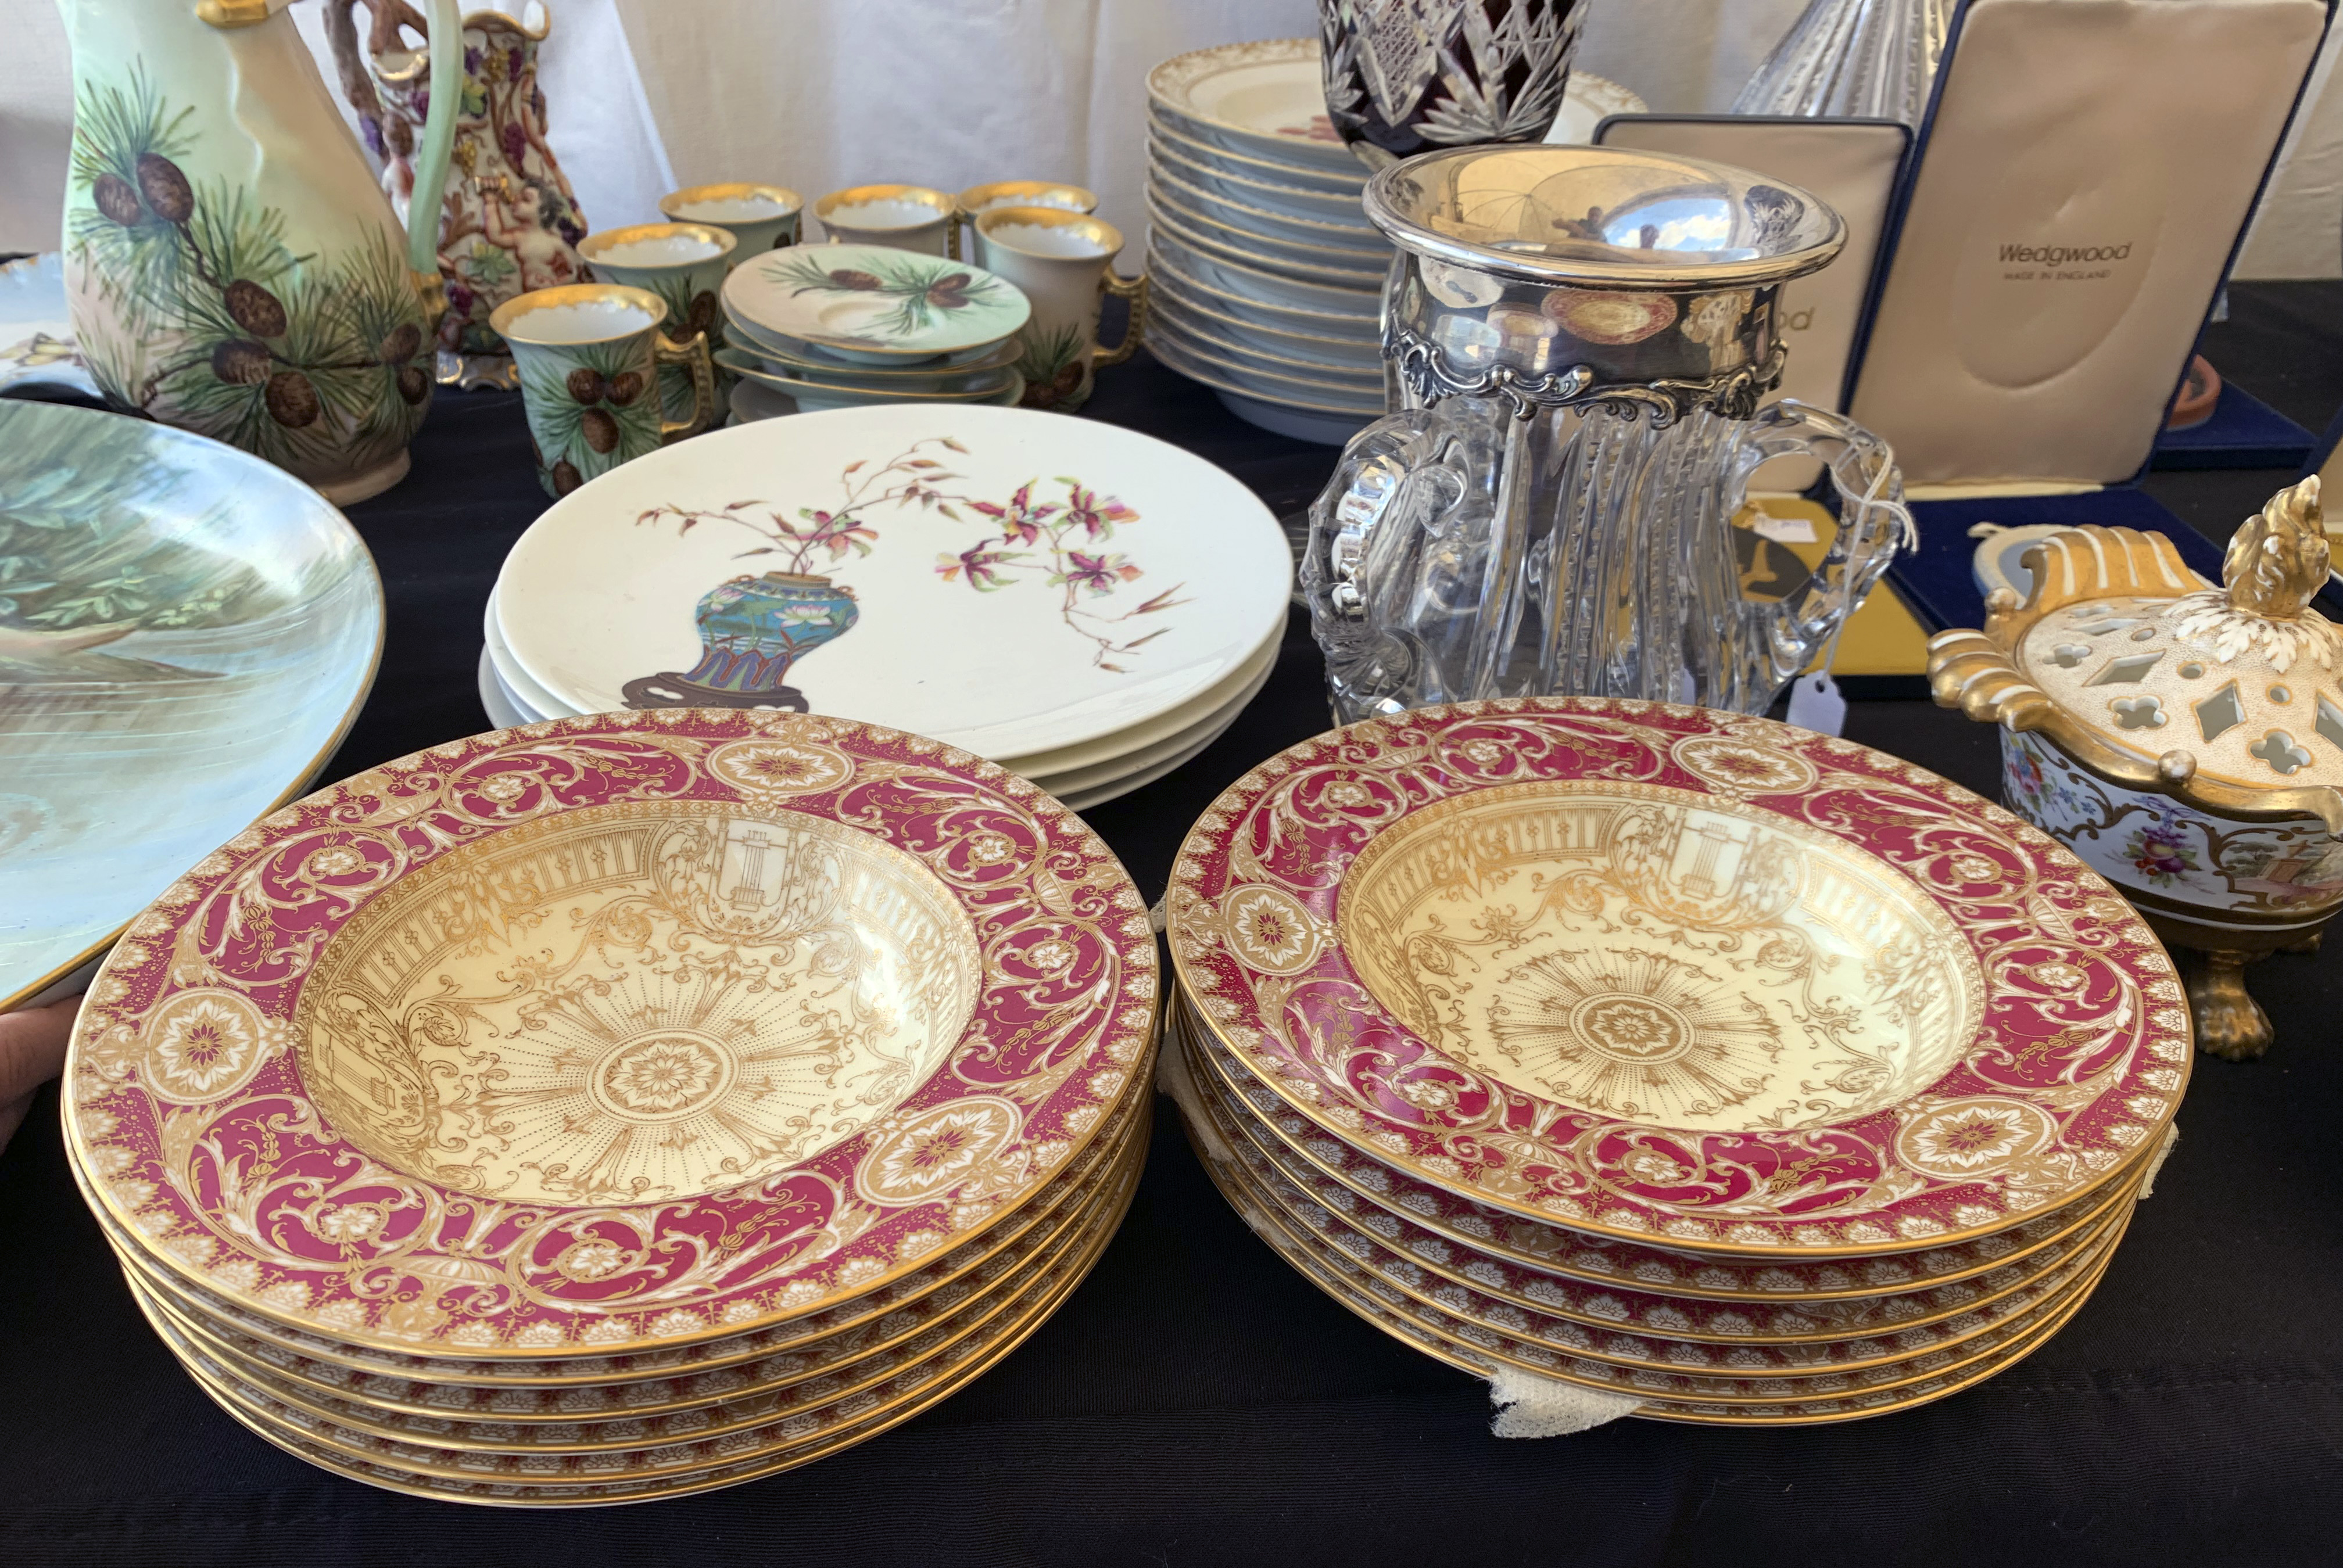 China is up for sale at a flea market in Brimfield, Massachusetts. China has become a staple at flea markets, as younger people opt to sell or donate heirloom dishware.